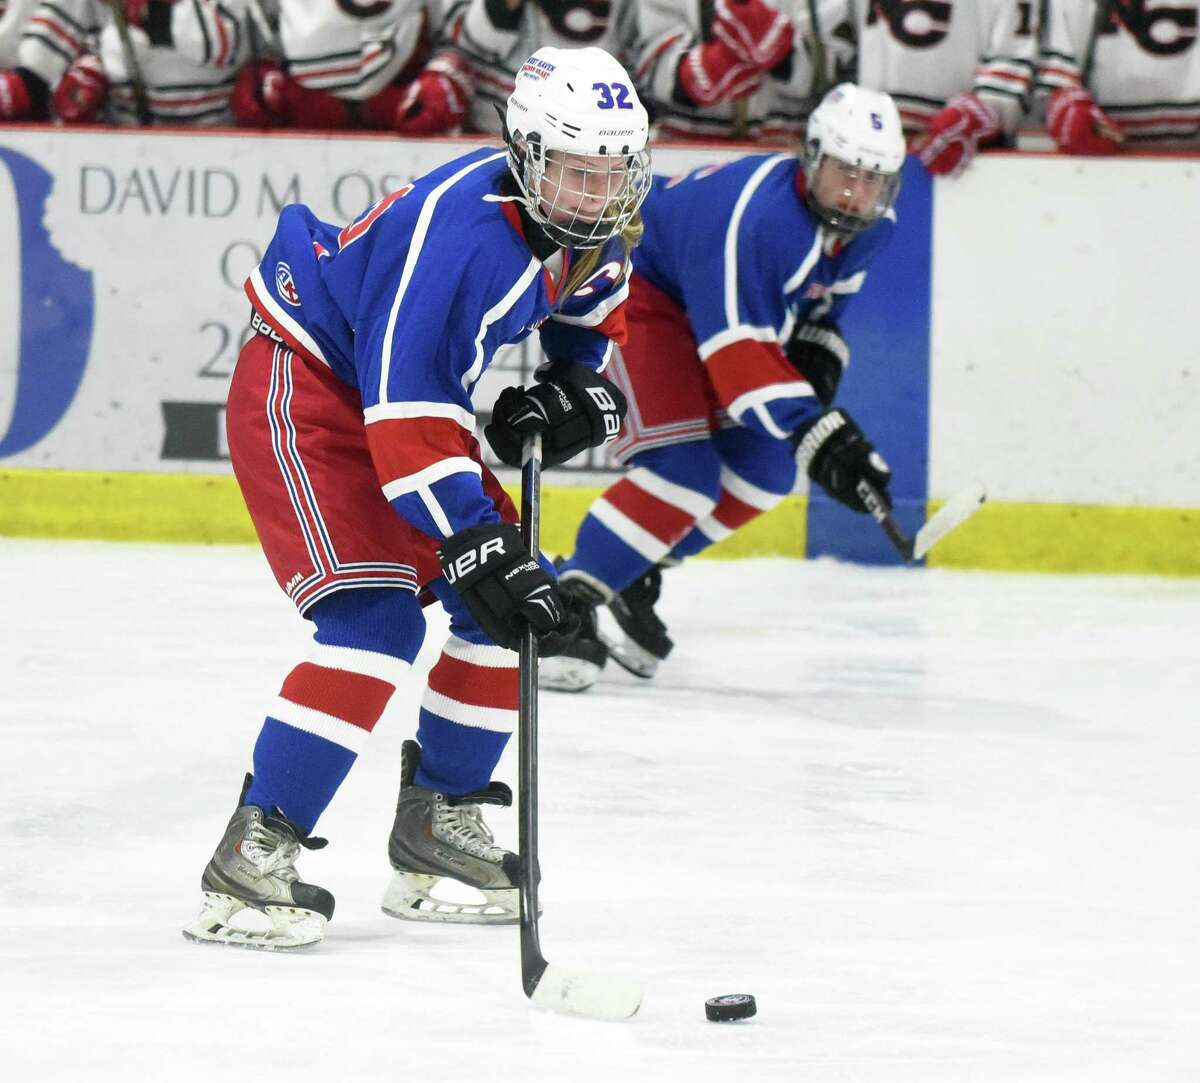 West Haven/SHA's Megan Froehlich (32) carries the puck into the offensive zone as linemate Jianna Cohrs (5) follows along the boards against New Canaan during a game in January.